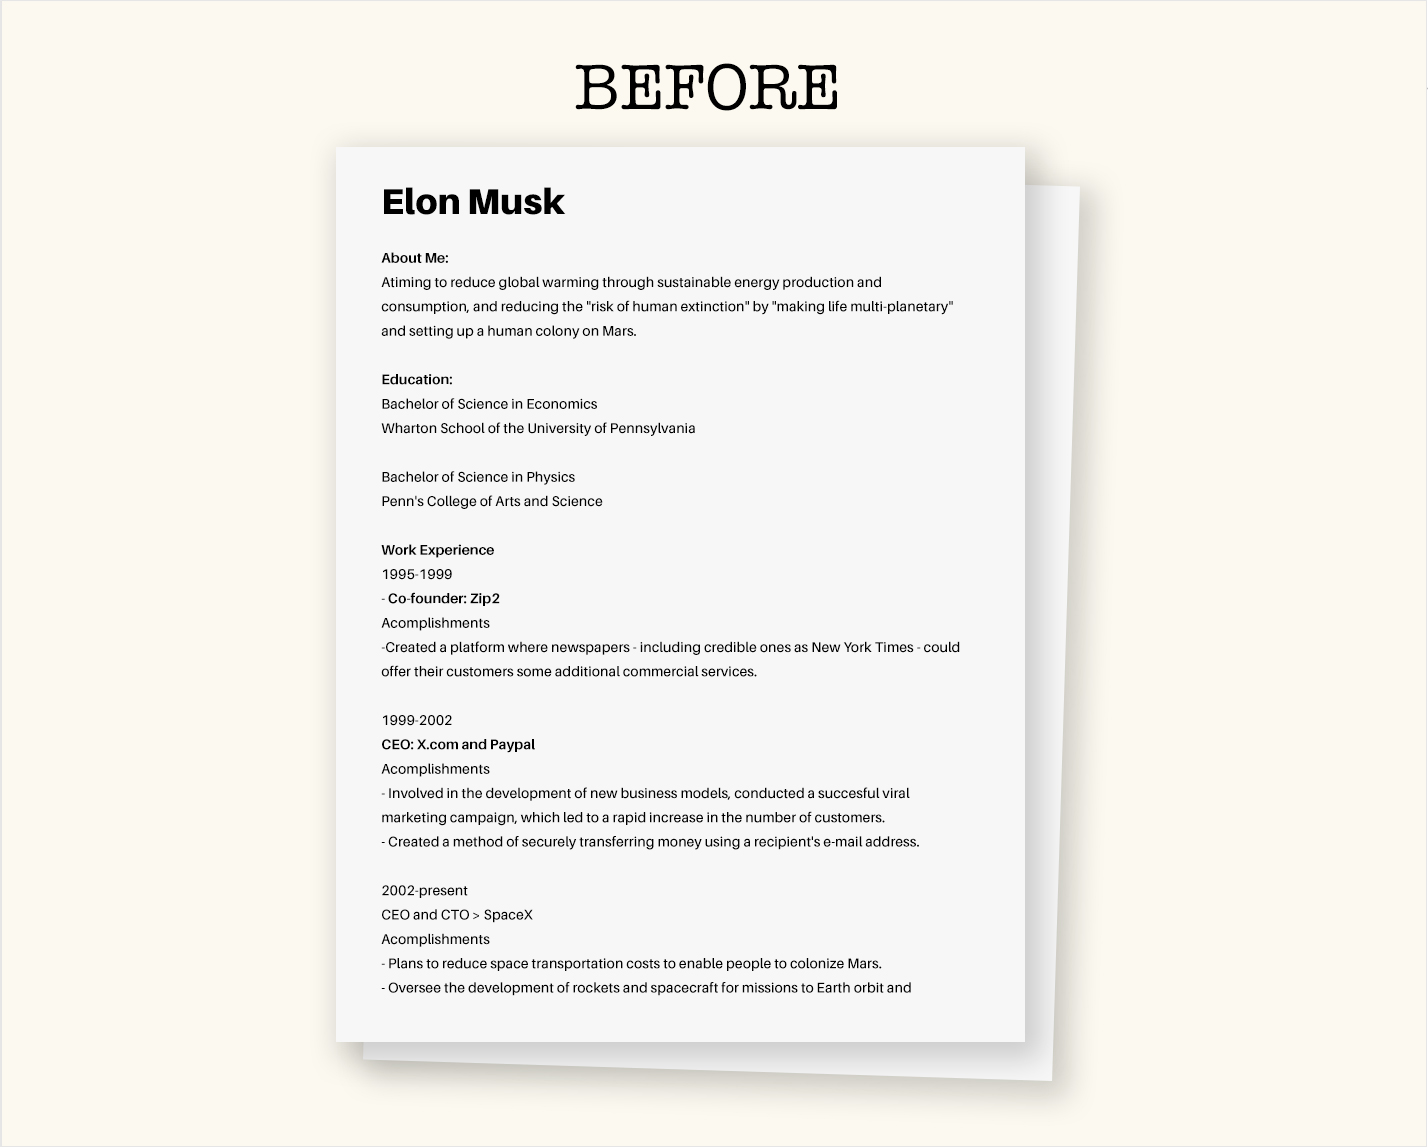 elon musk resume before - How To Create A Resume